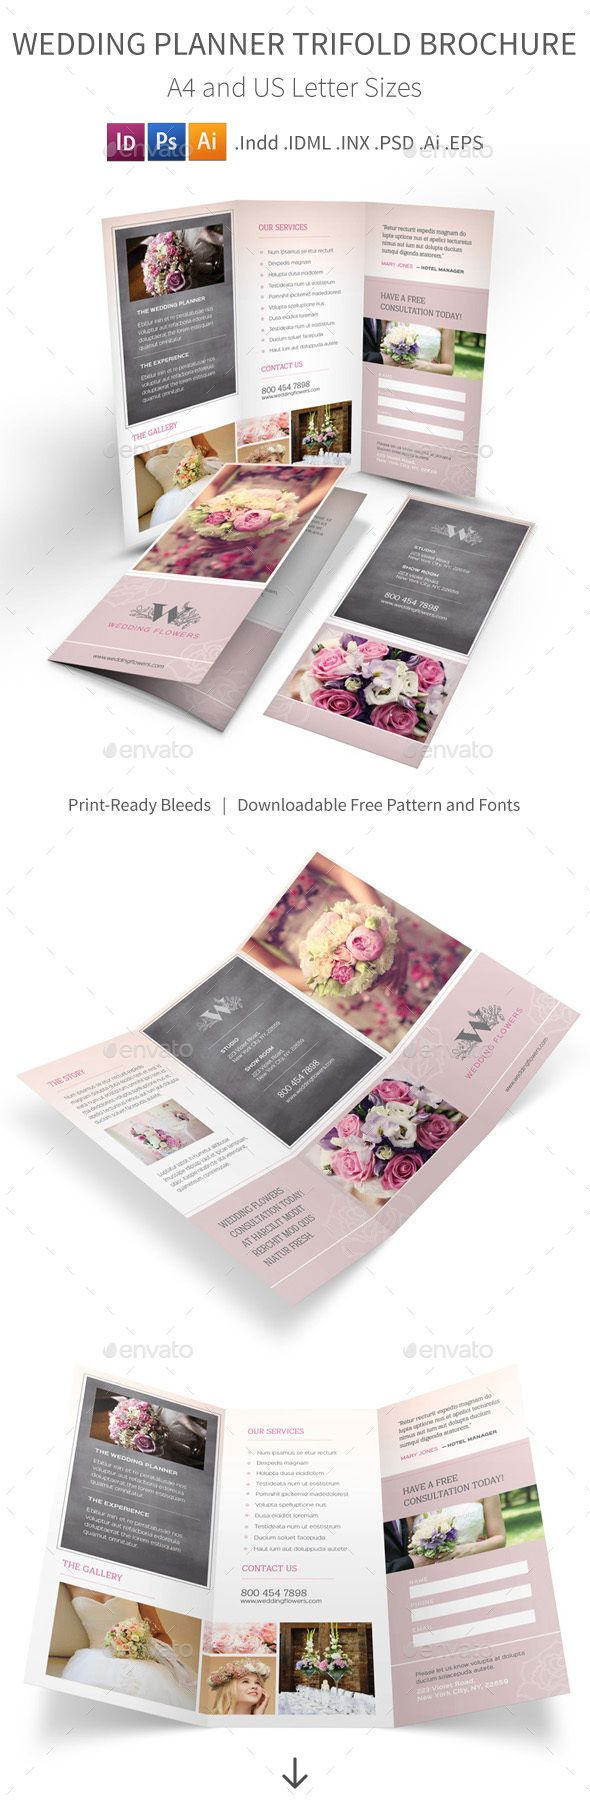 Wedding Planner Trifold Brochure  PSD Template • Download ➝ https://graphicriver.net/item/wedding-planner-trifold-brochure/17105373?ref=pxcr